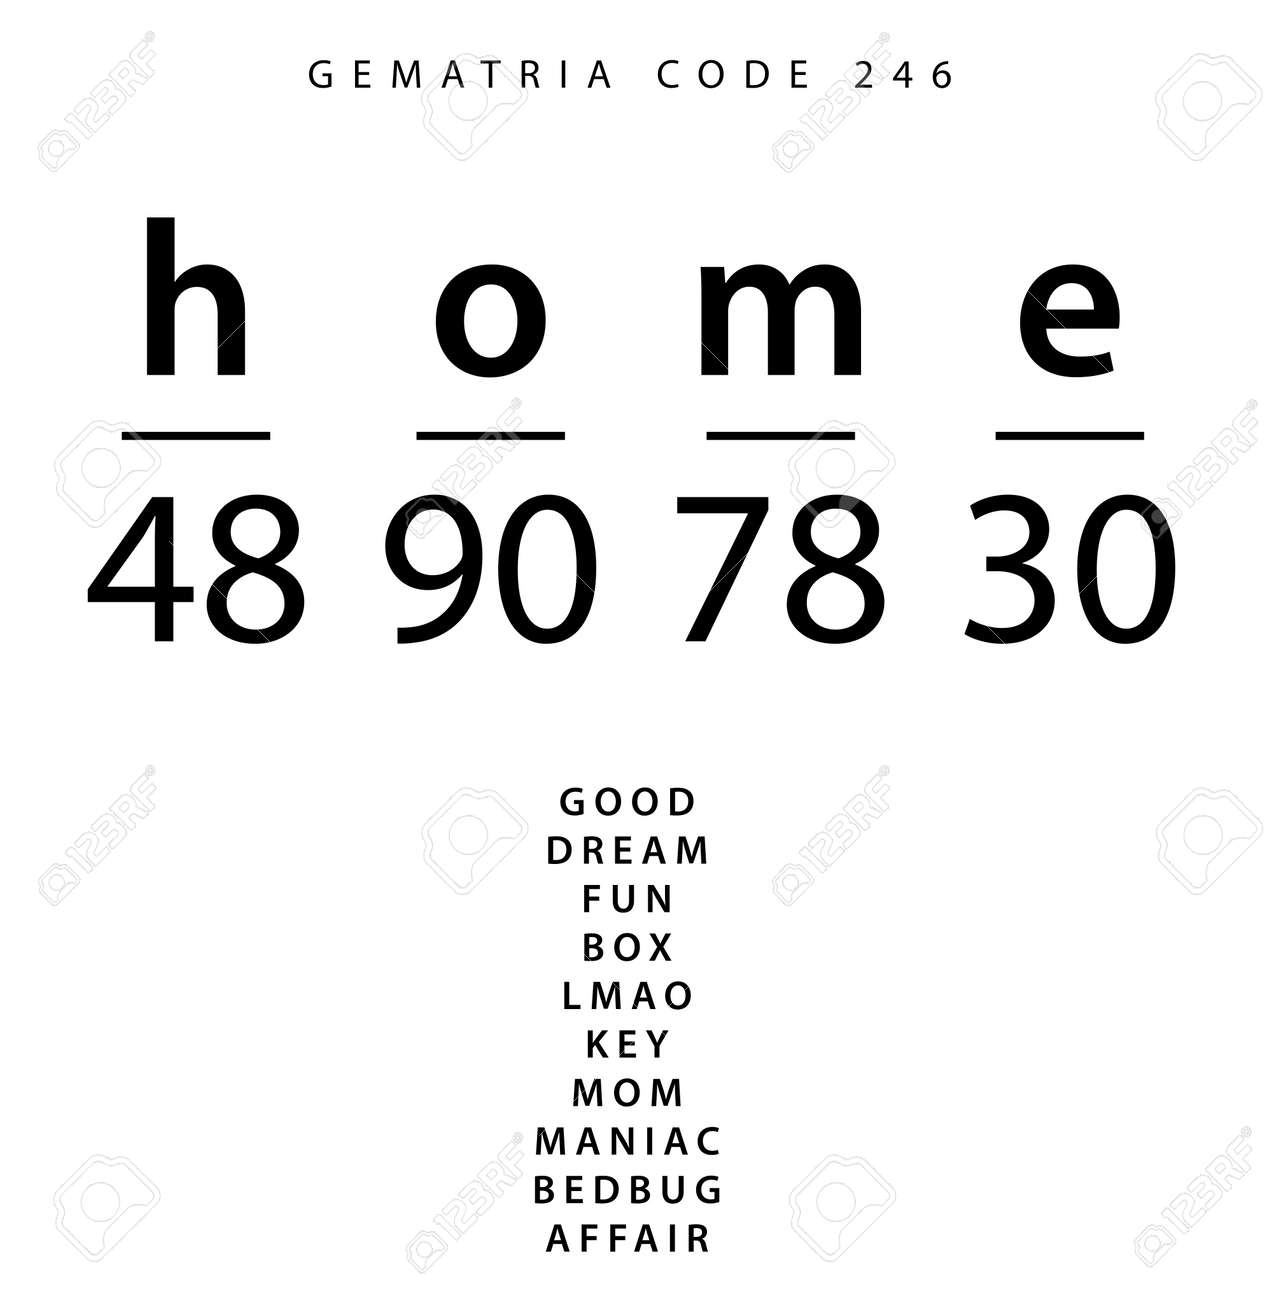 Home word code in the English Gematria - 170082819